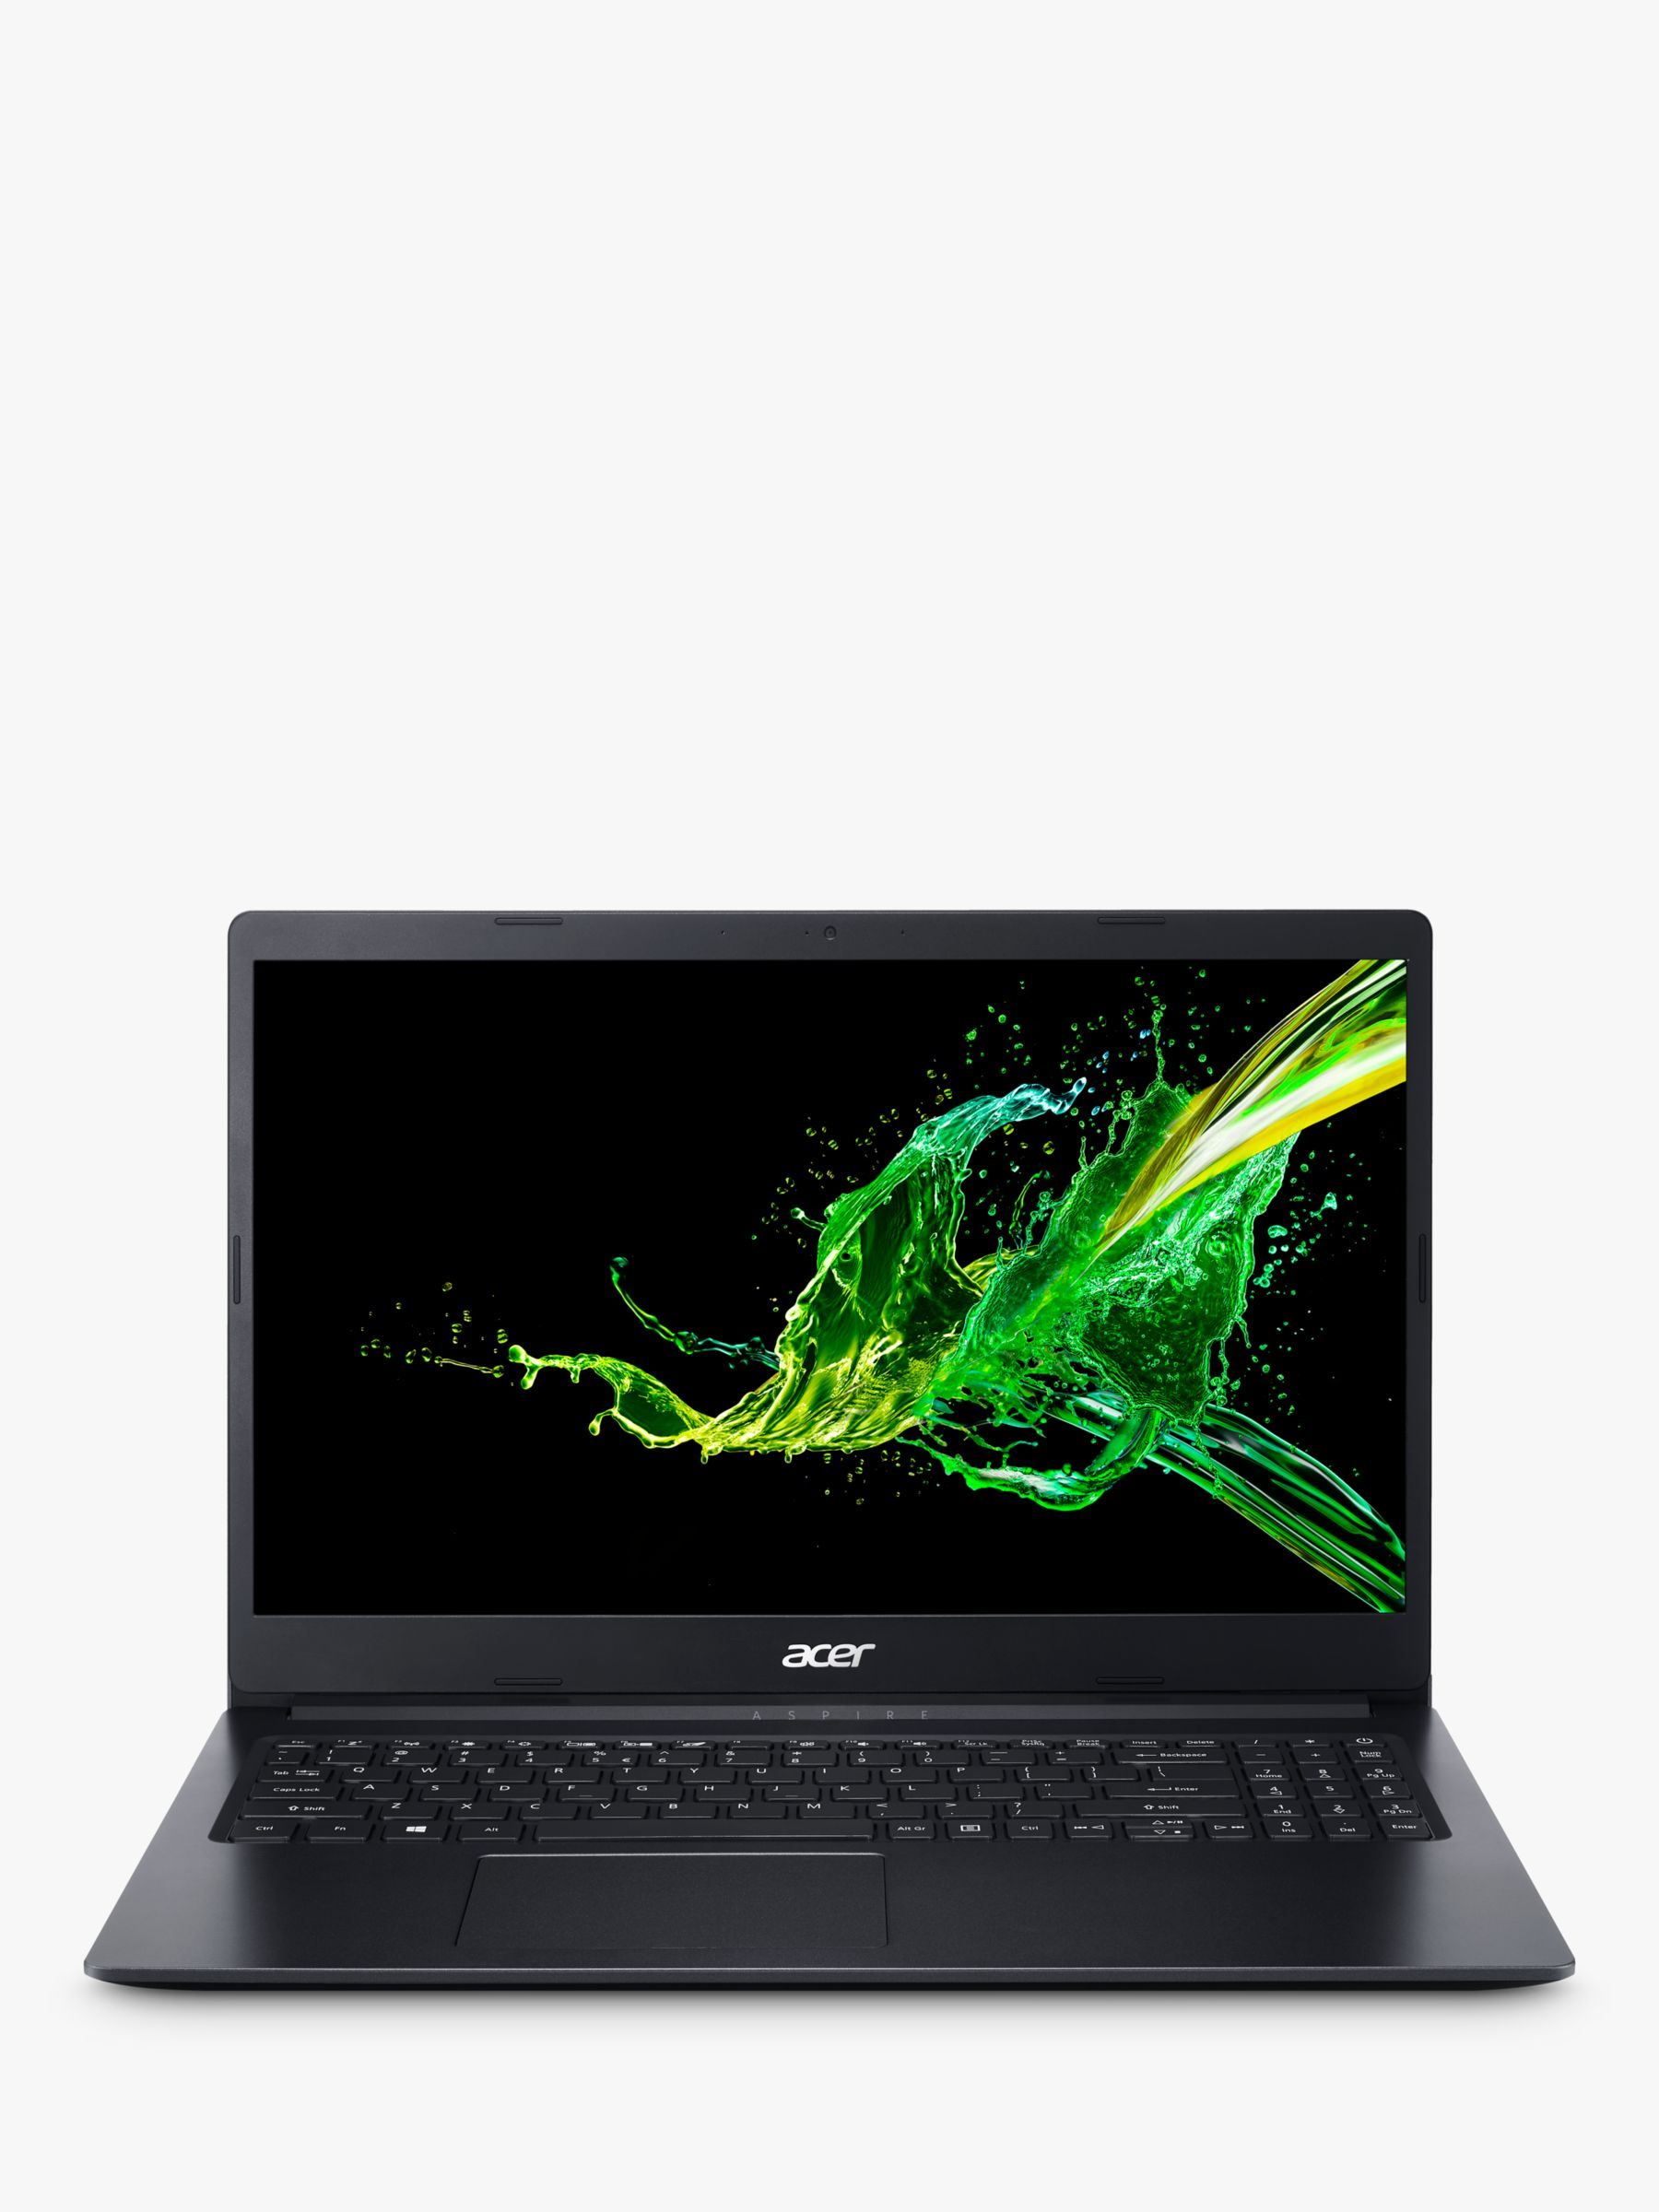 Acer Acer Aspire 3 Laptop, Intel Pentium Processor, 4GB RAM, 128GB SSD, 15.6, Black